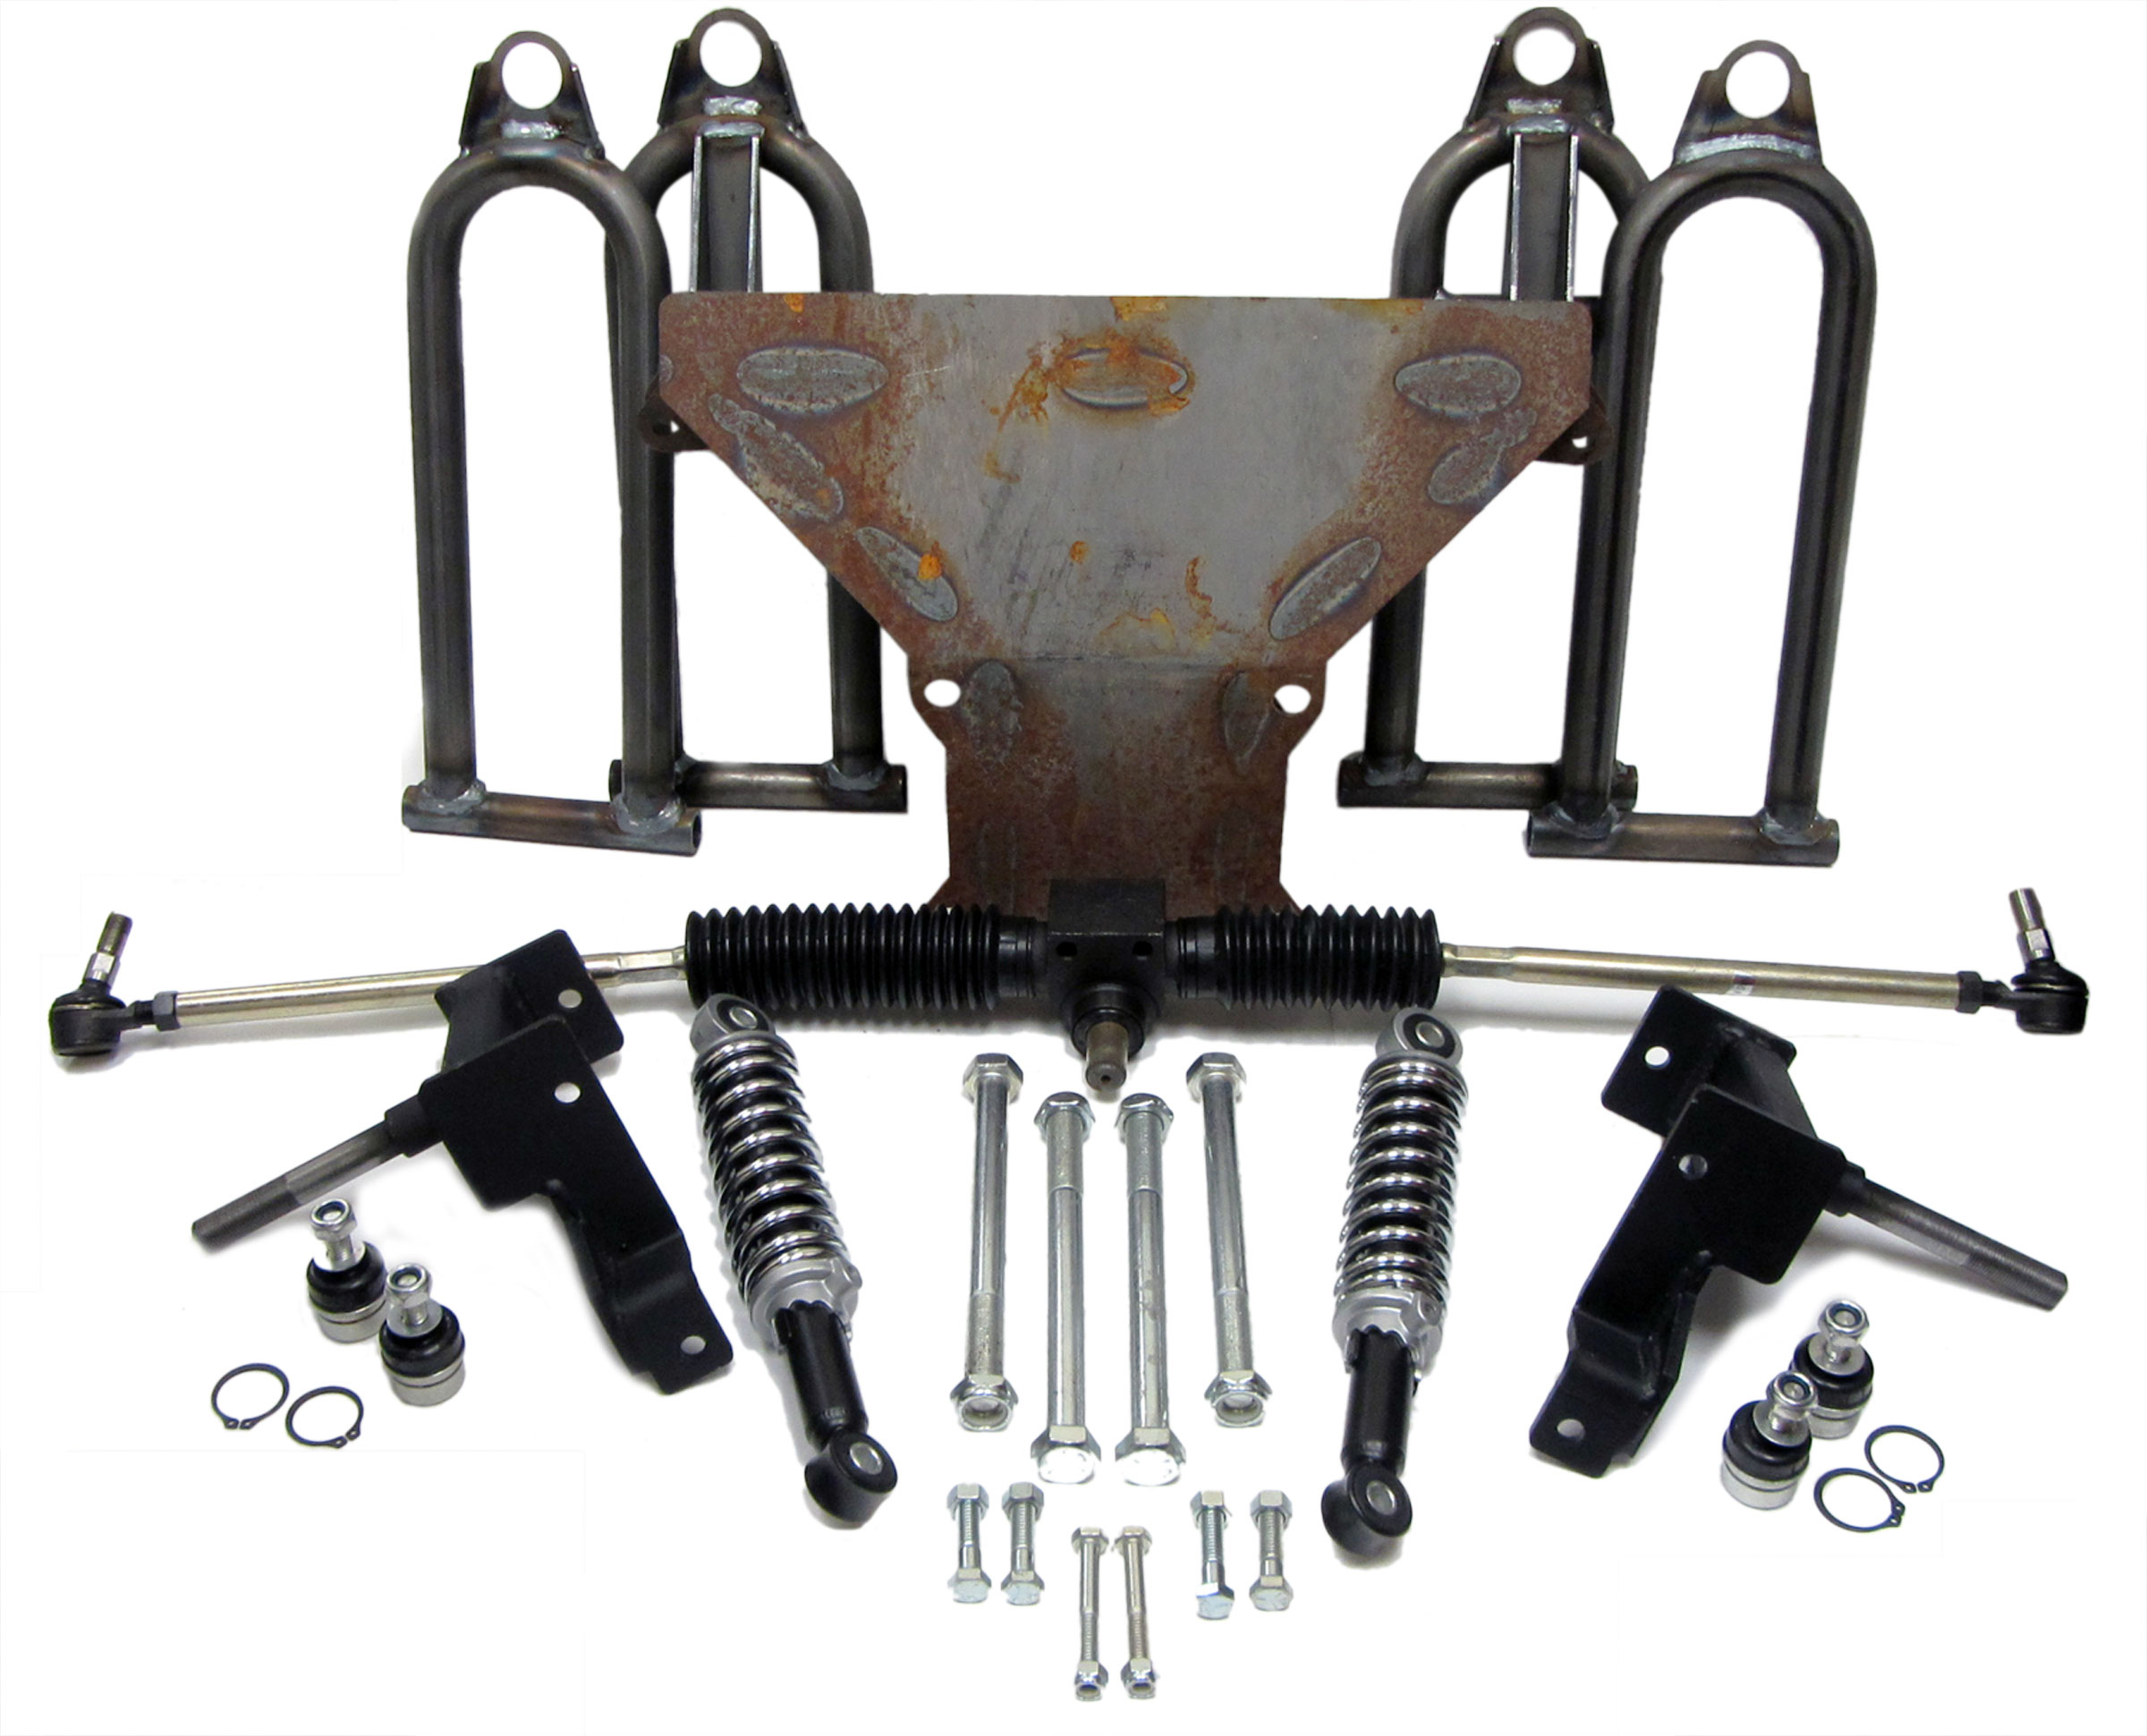 Complete Front End With Spindles For Yerf Dog Designed 5 8 Rear Swingarm Diagram And Parts List Manco Gokartminibikeparts Zoom